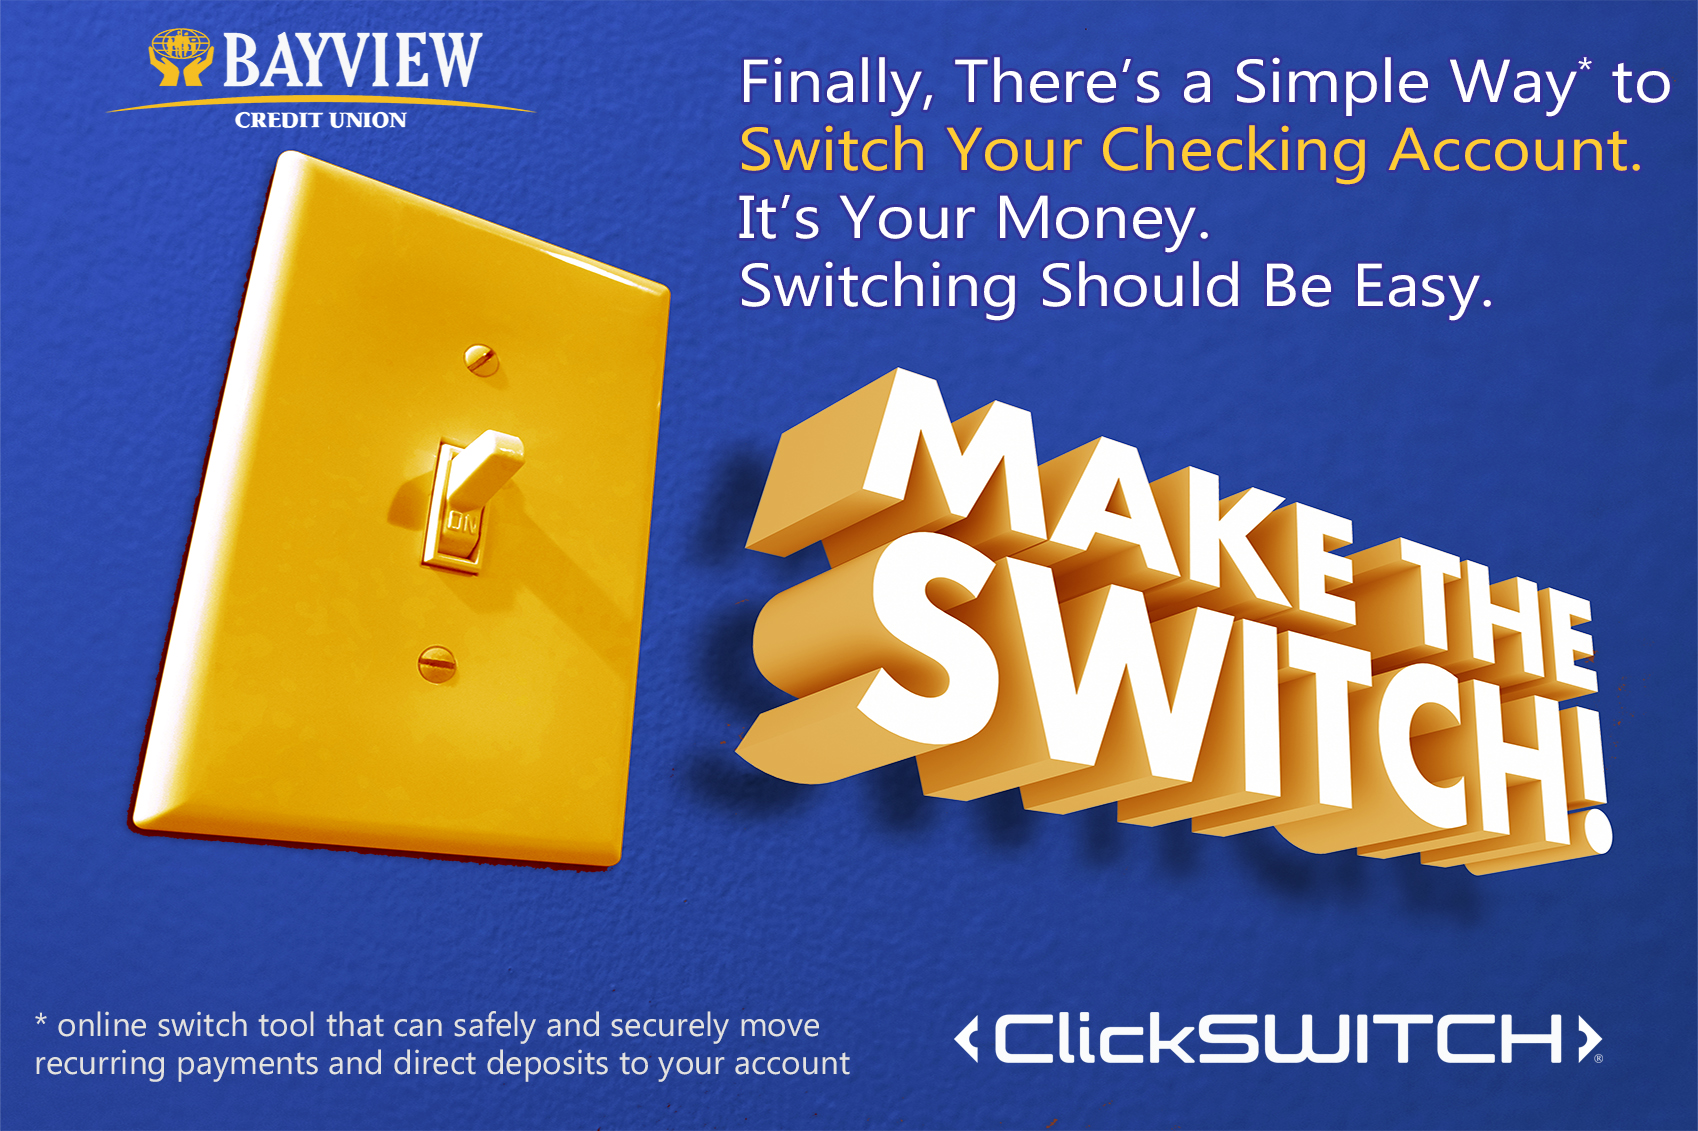 ClickSwitch